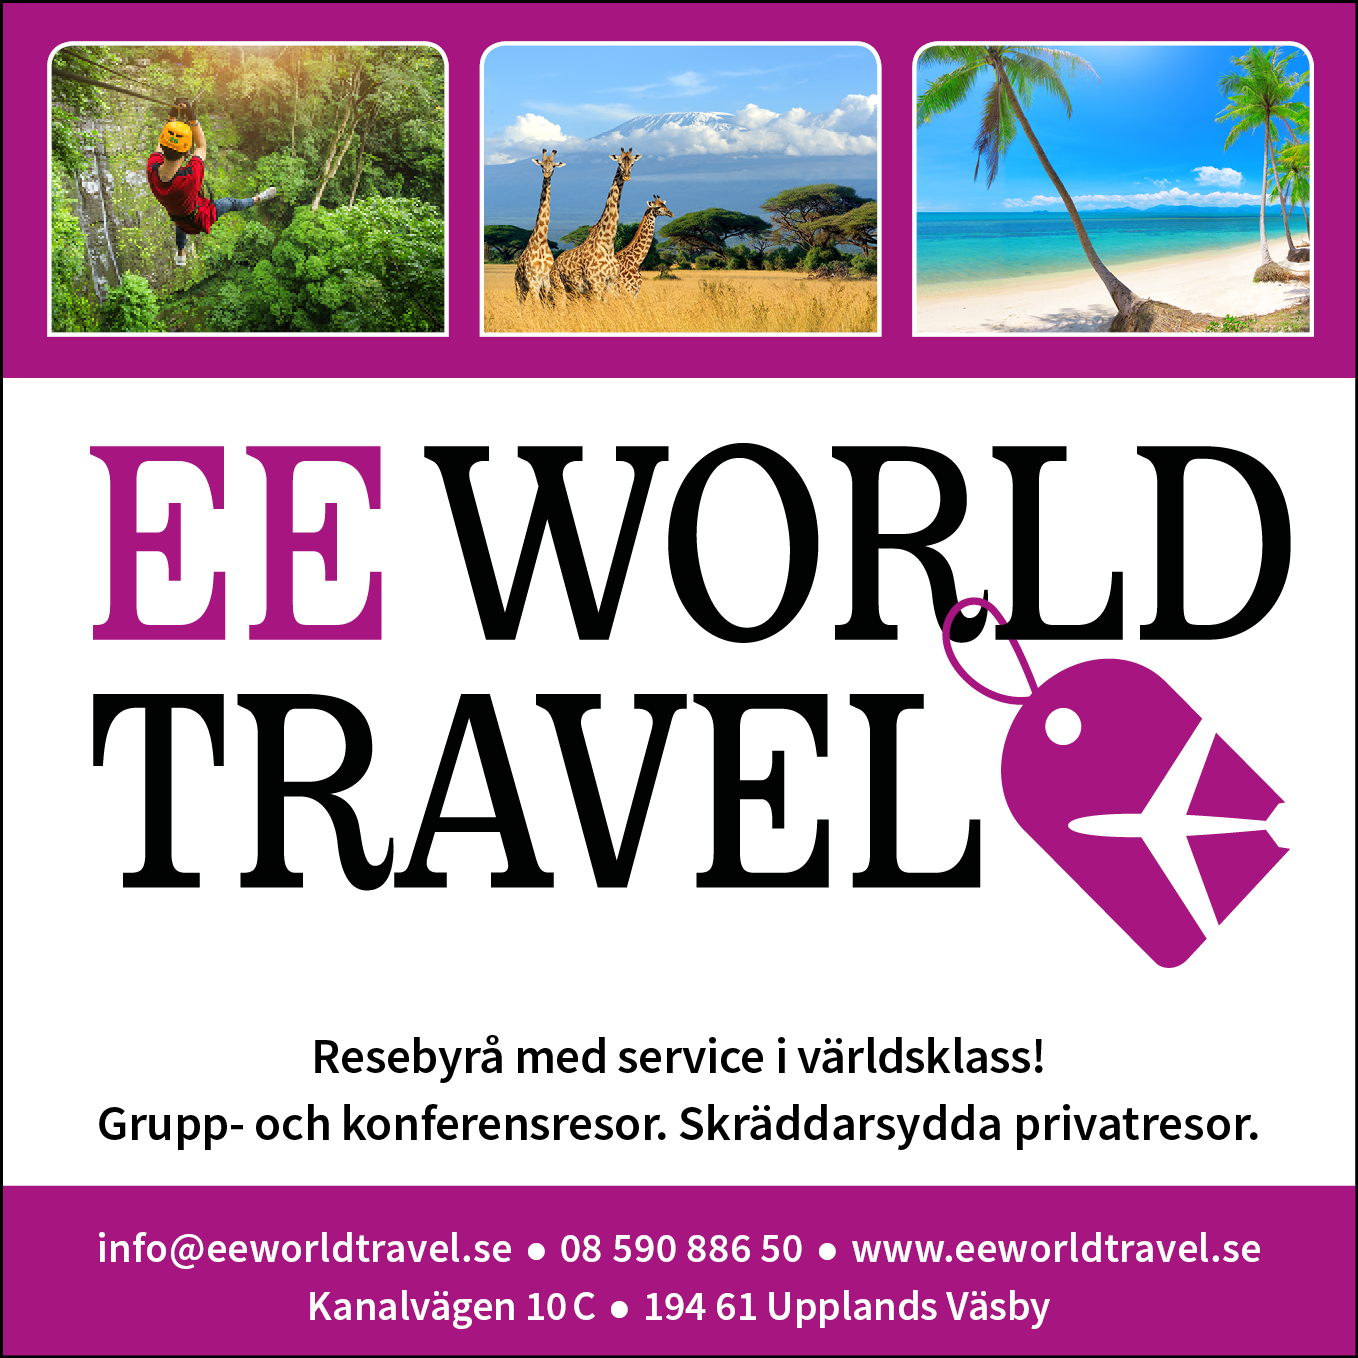 EE WorldTravel FB puff 16png